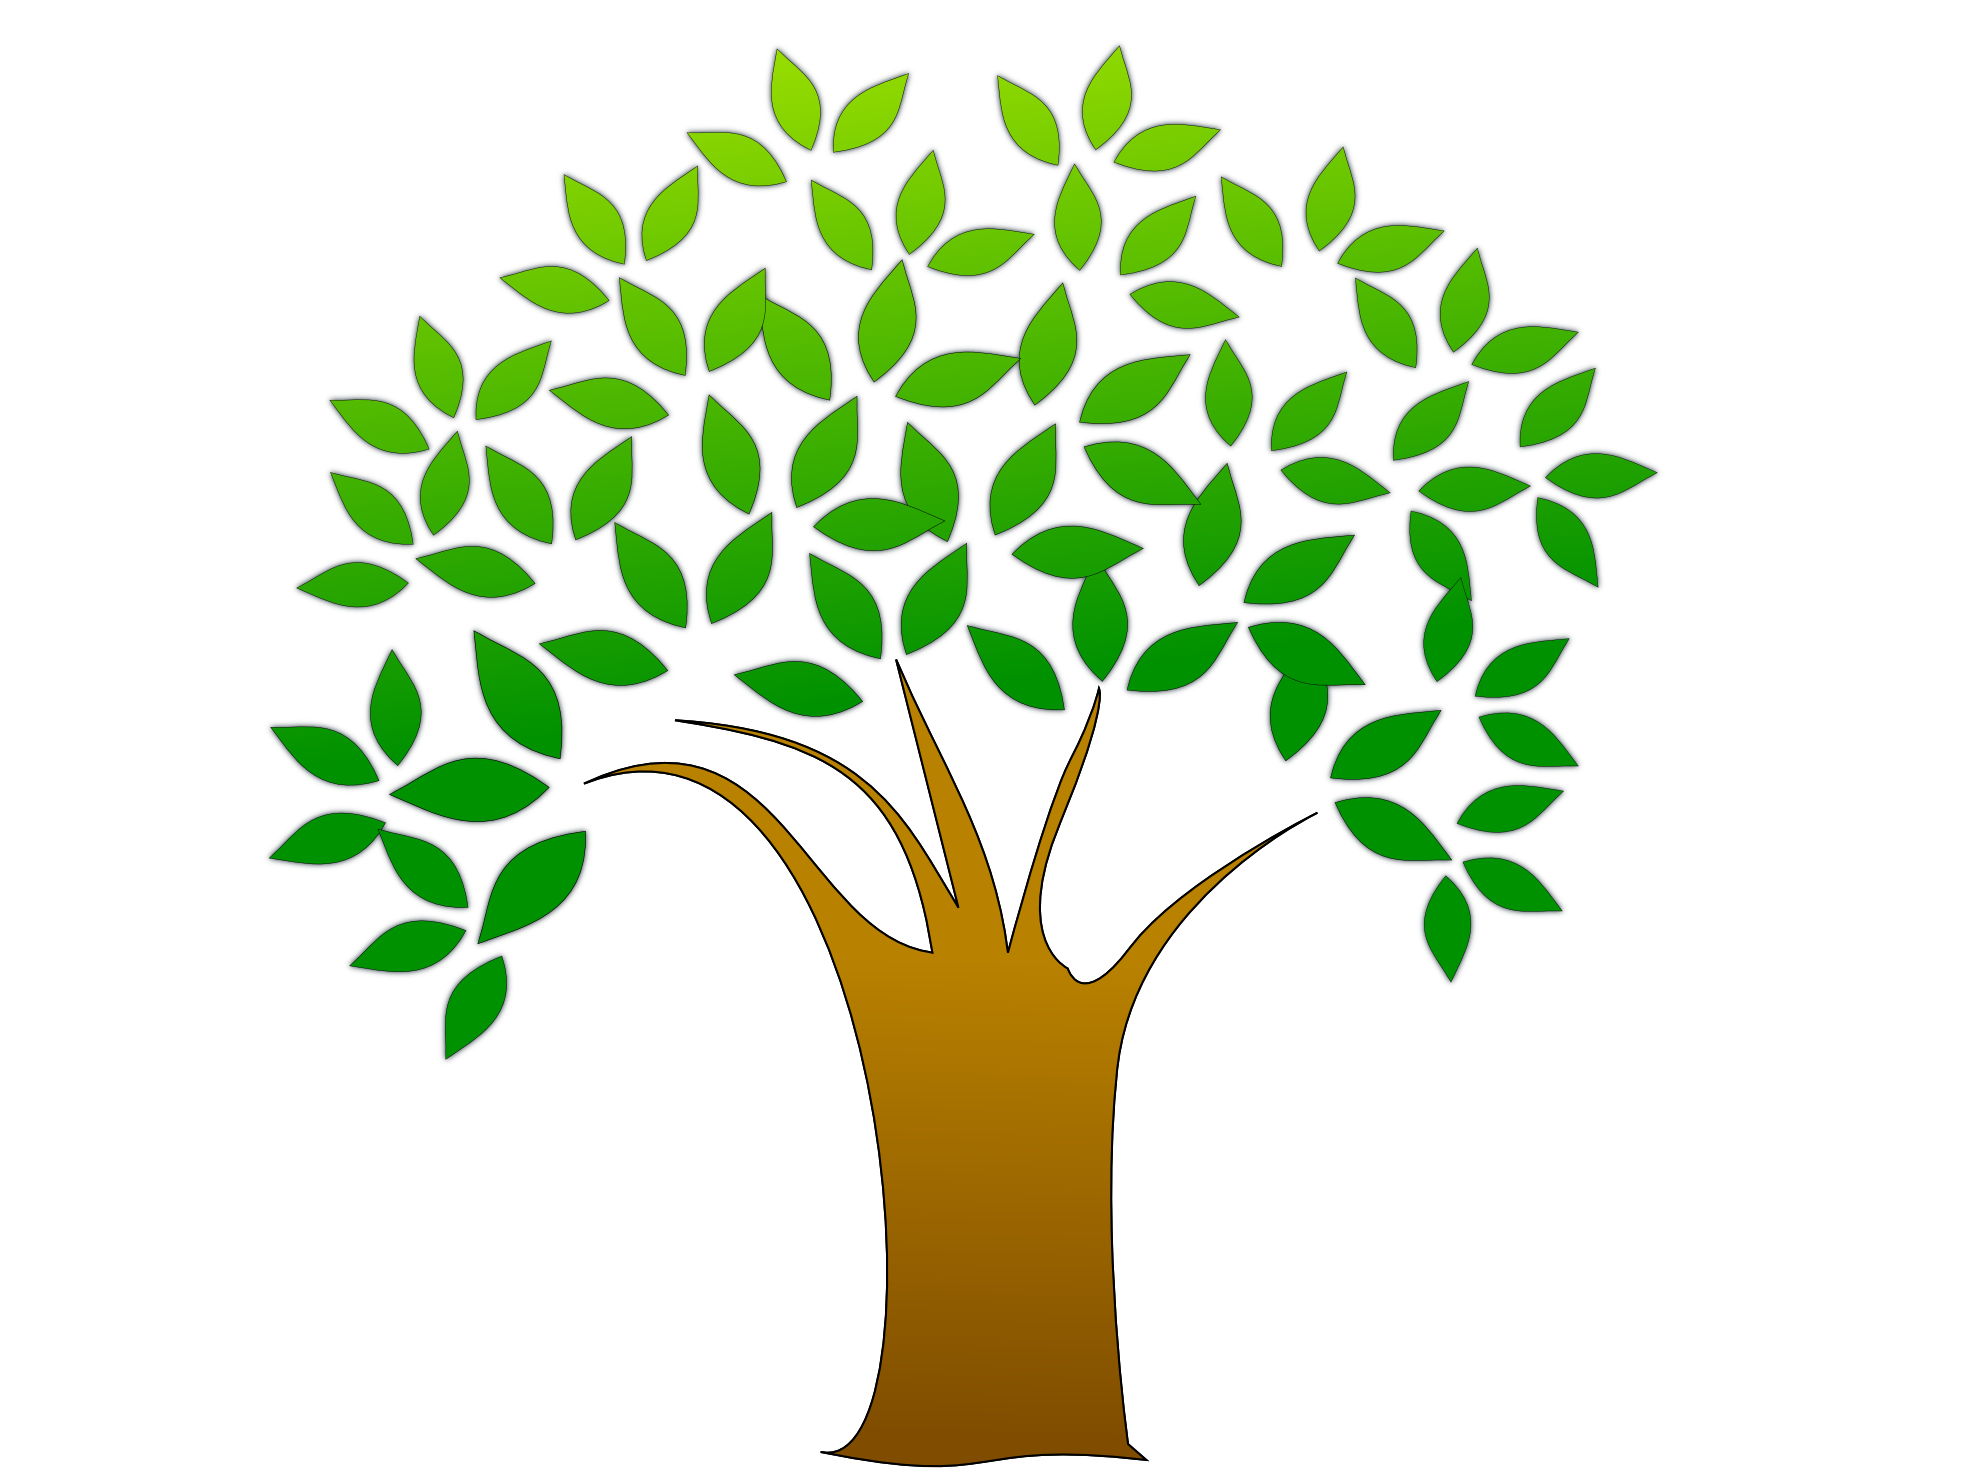 Tree Clipart Png Transparent Tree Clipart Png Images Pluspng